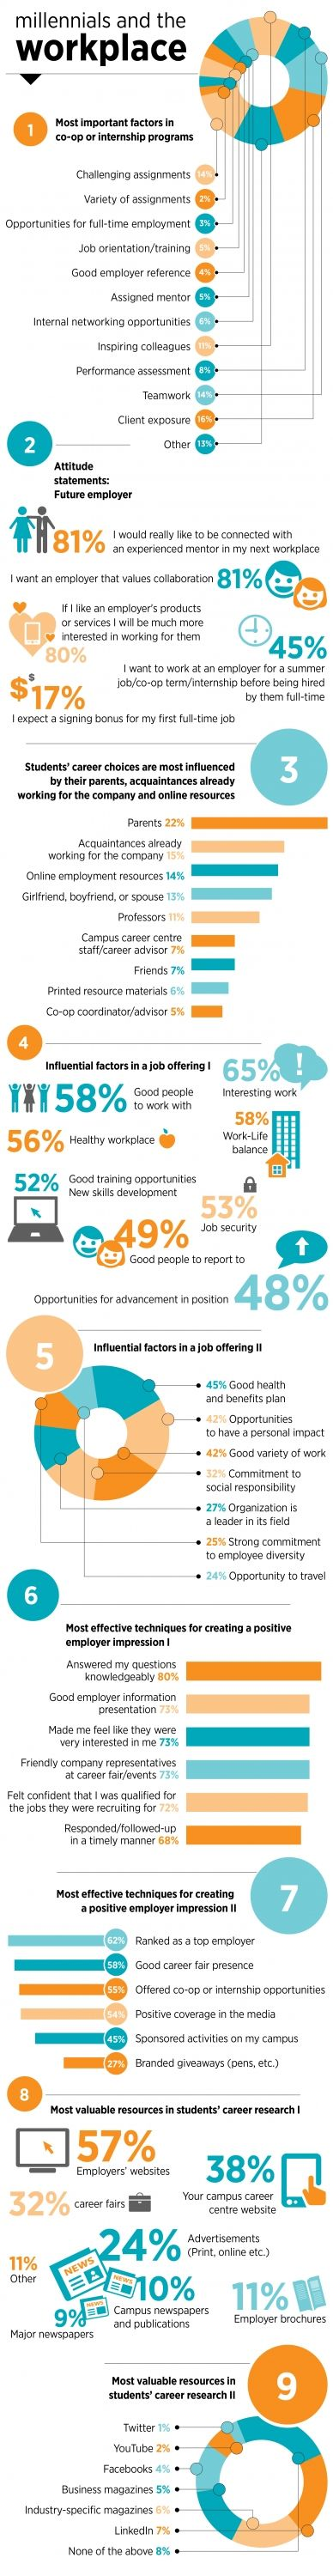 best images about jobs careers the office how millennials view the workplace employers and job satisfaction